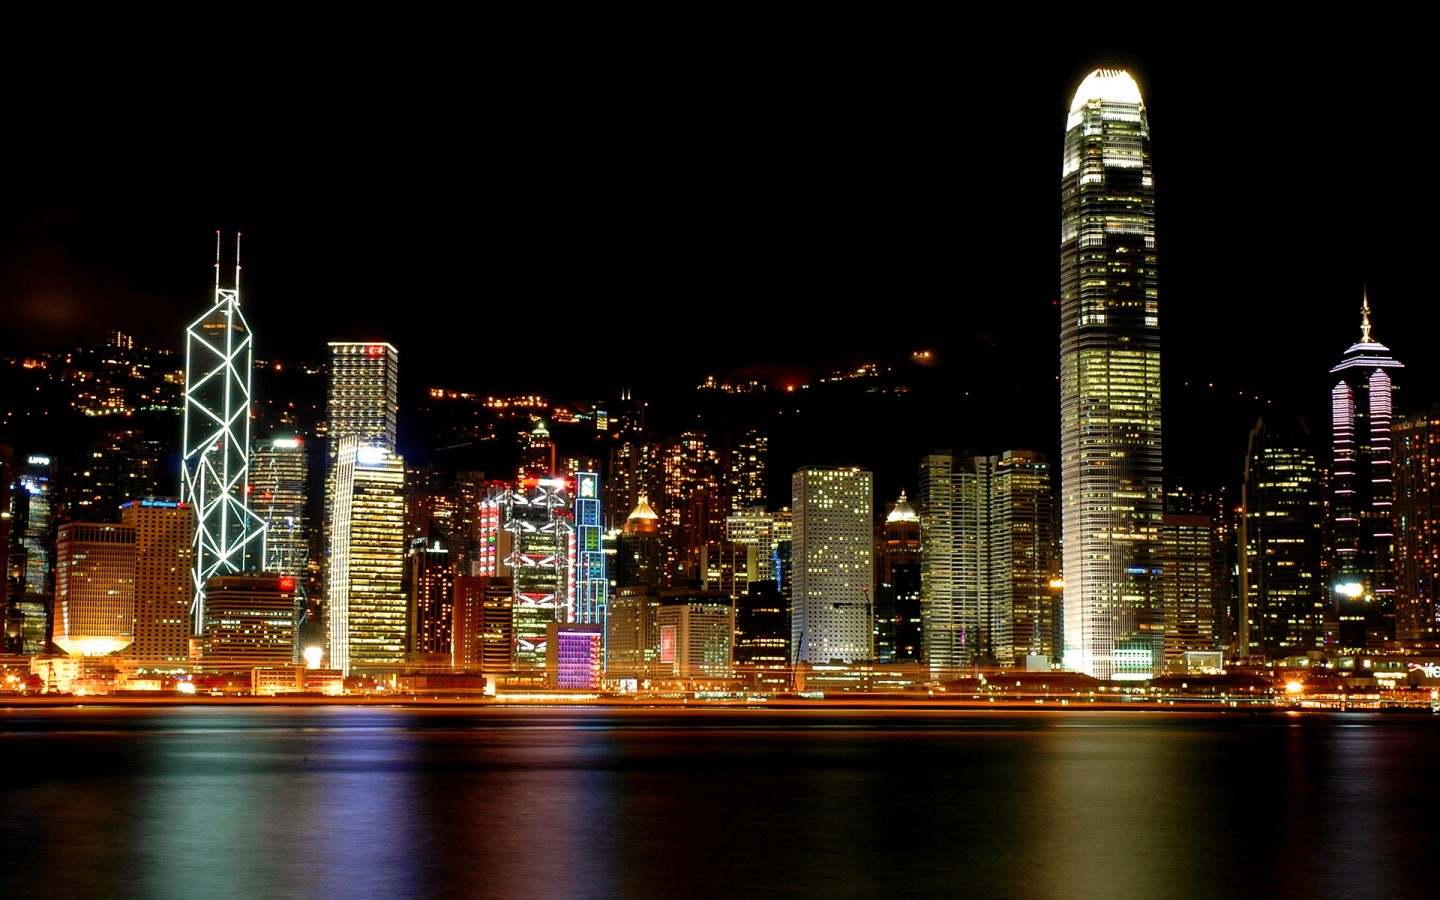 Uhd 3d Wallpaper Download Hong Kong Victoria Harbour Wallpapers Hd Wallpapers Id